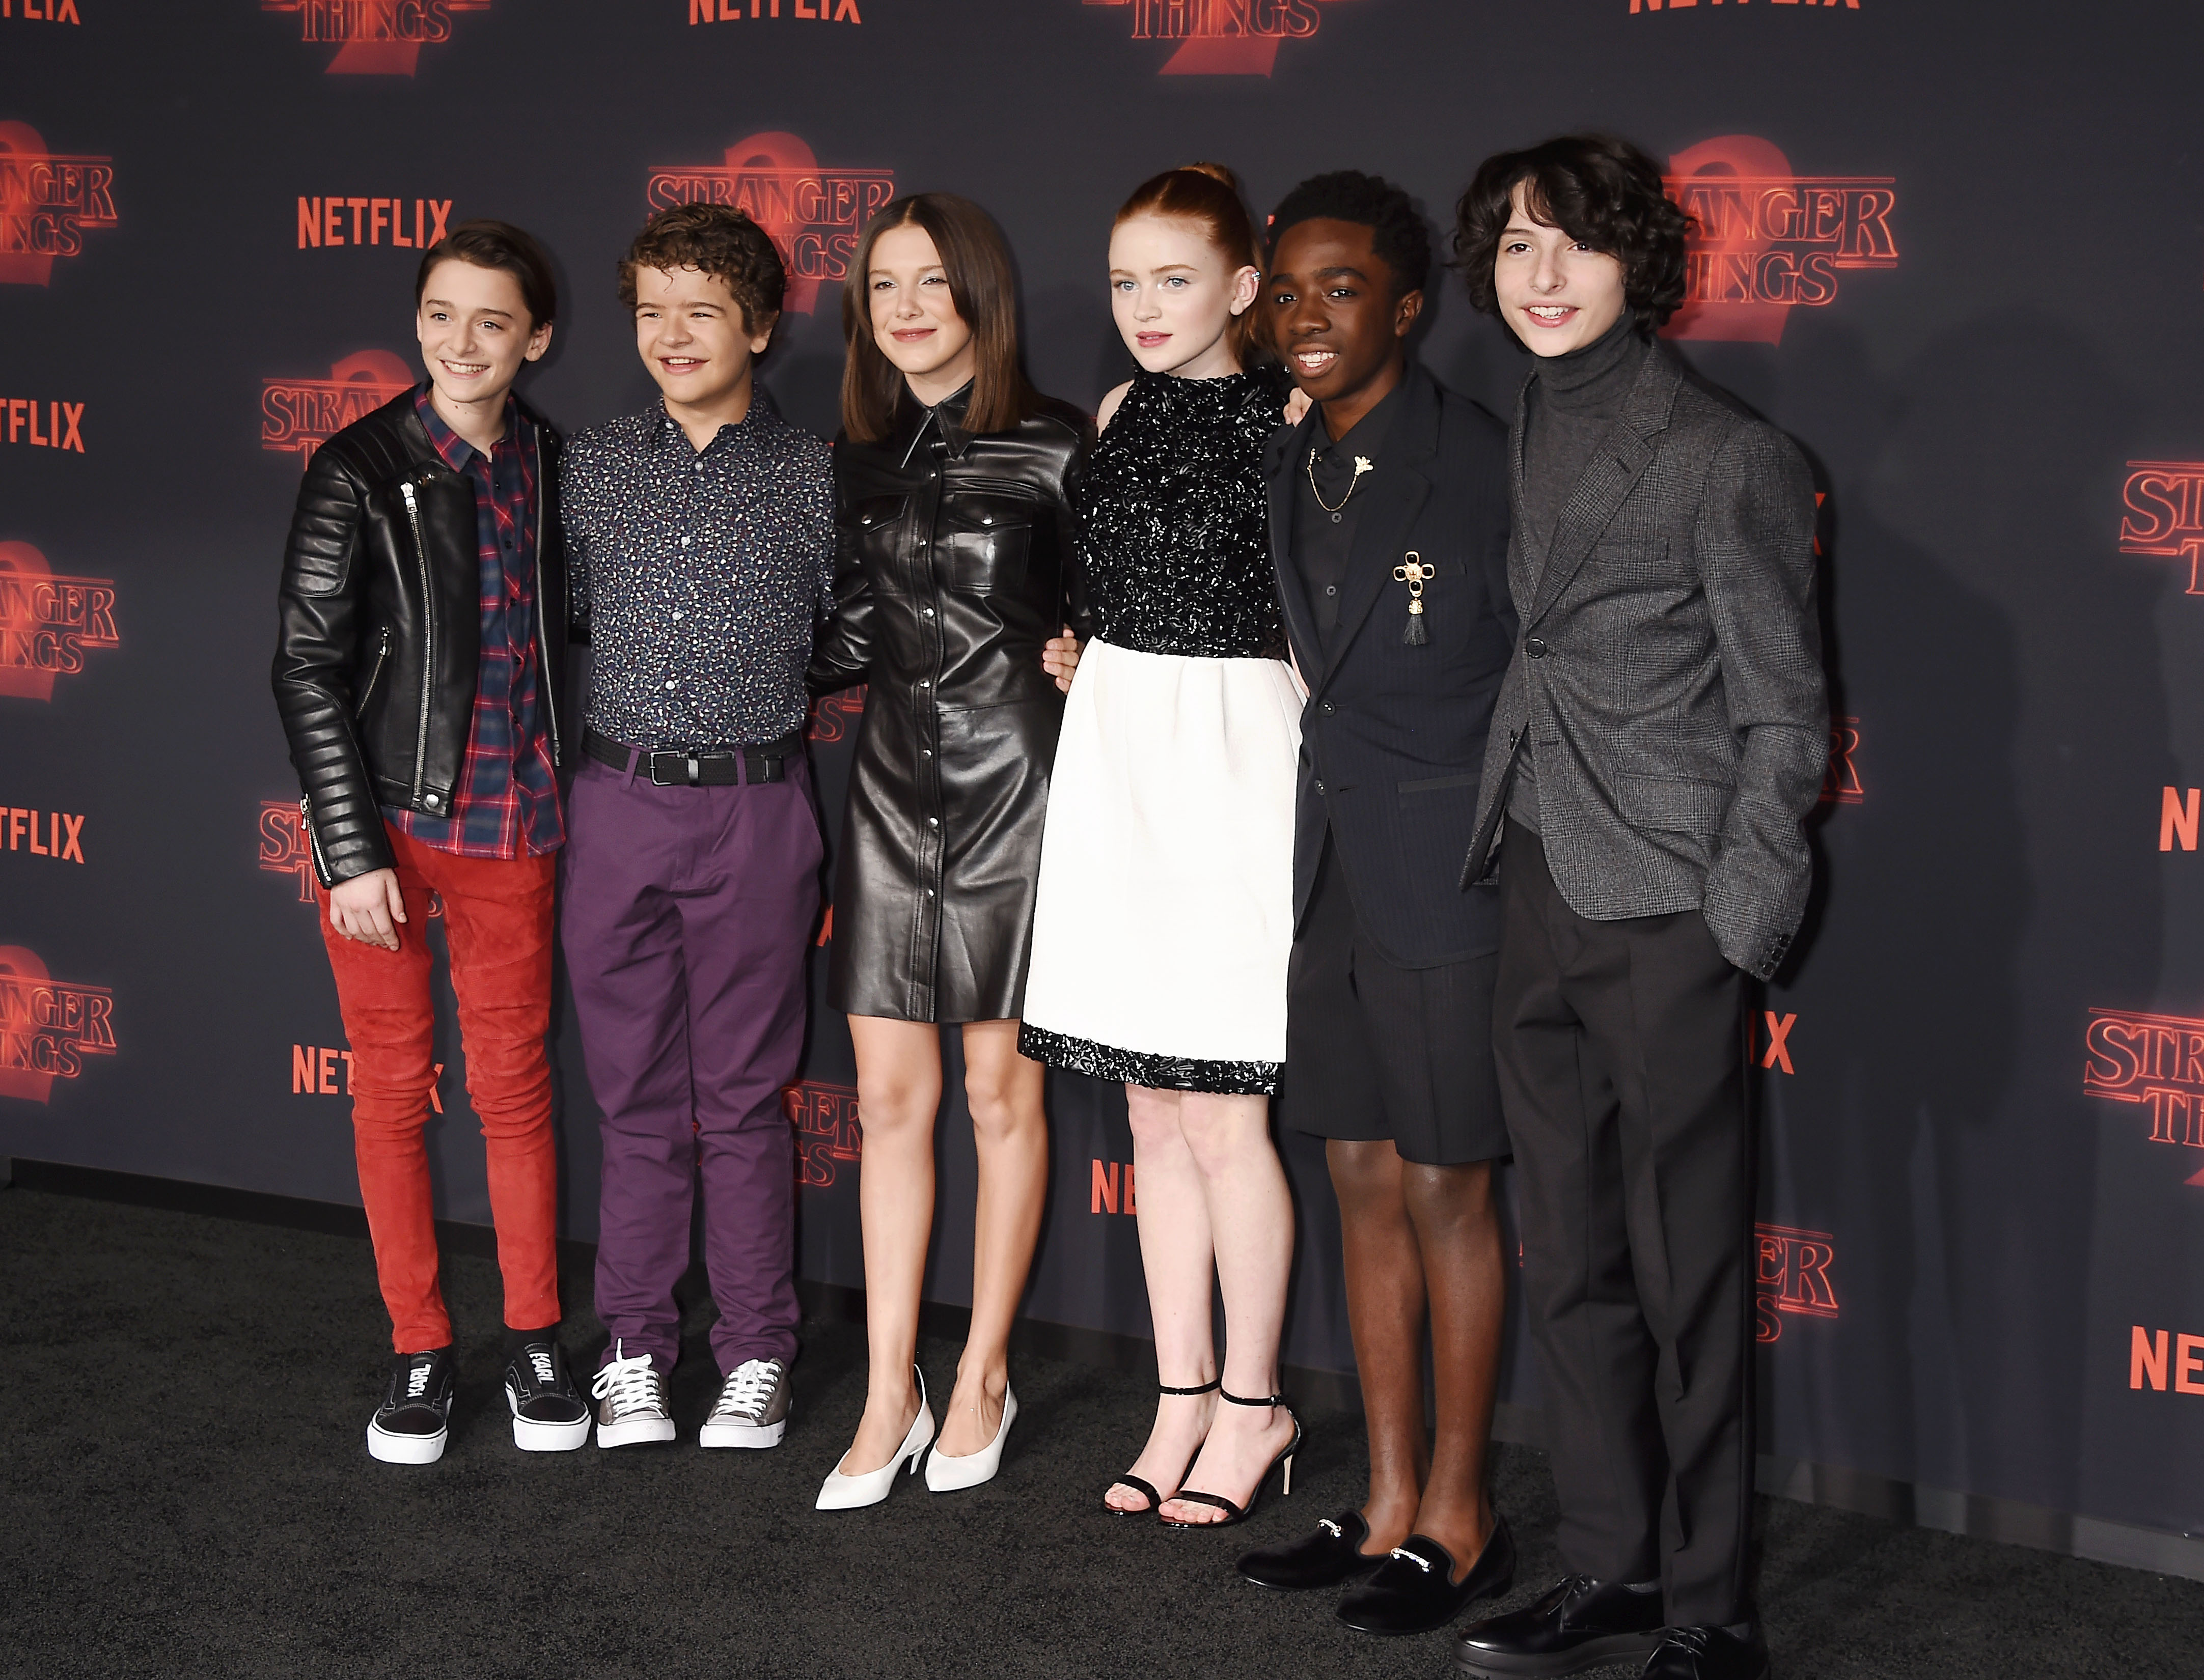 Stranger Things cast at the Los Angeles premiere